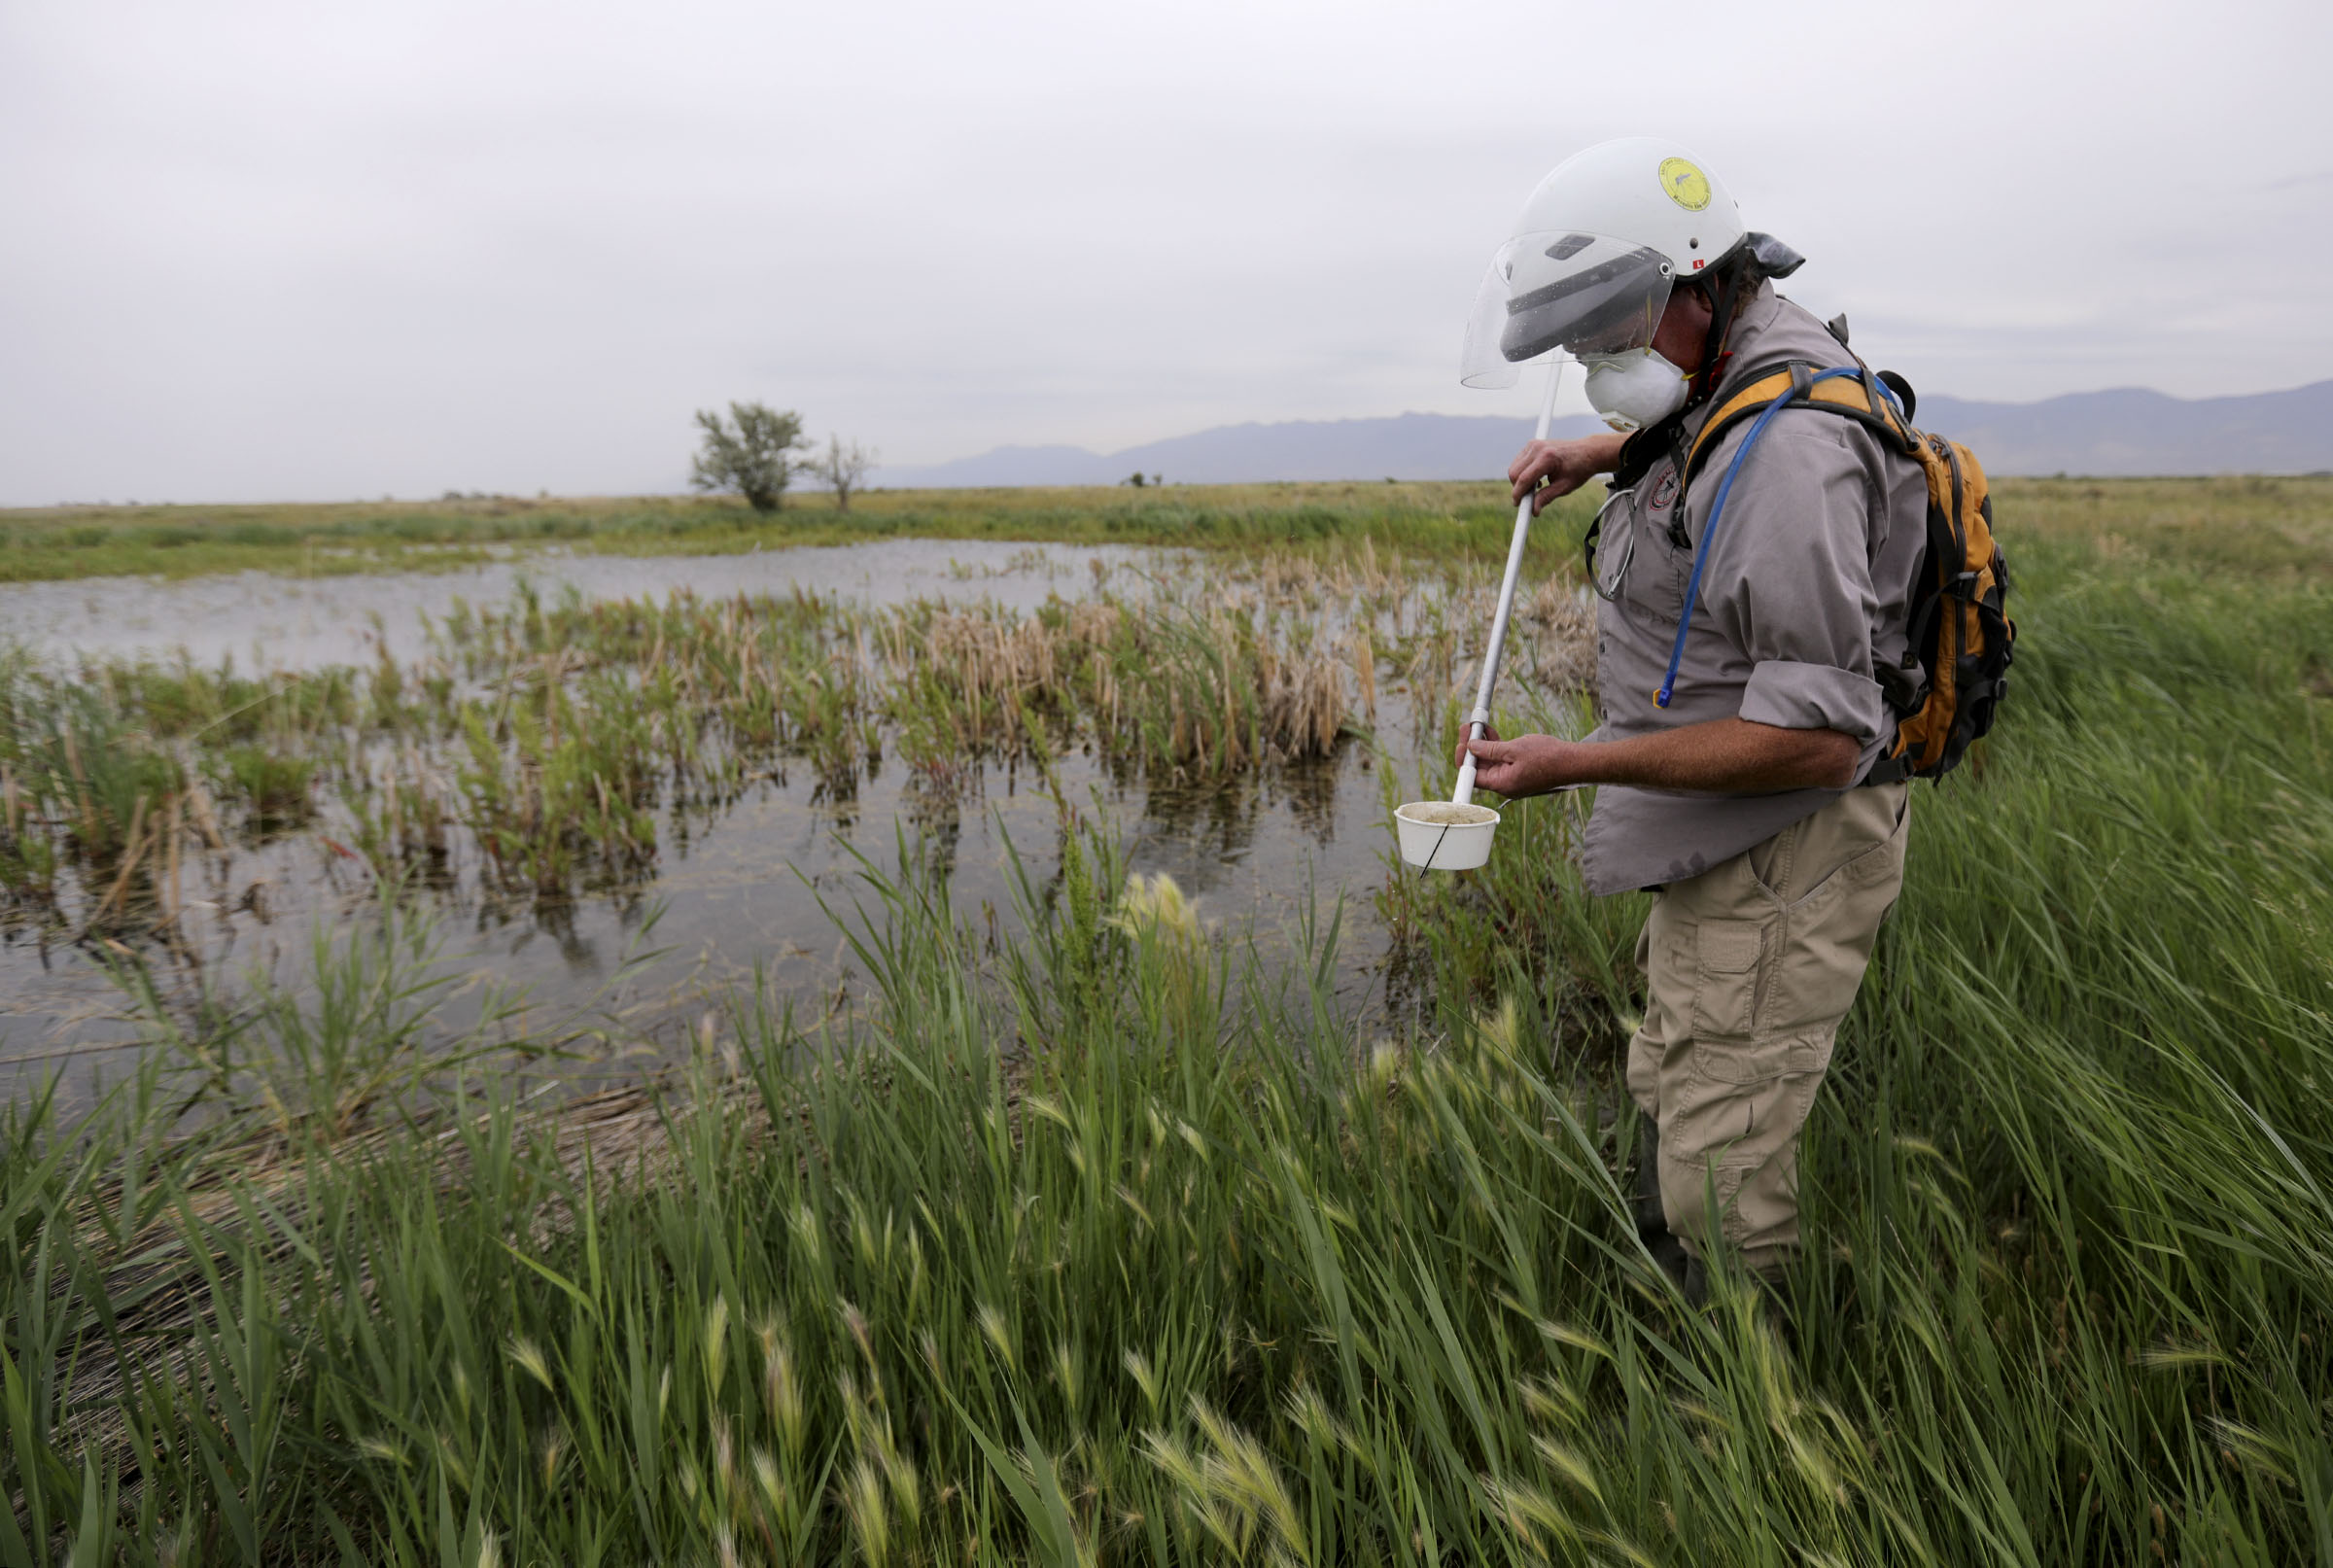 Jason Hardman, Salt Lake City Mosquito Abatement District operations supervisor, pulls a sample of water while demonstrating how he looks for mosquito larvae in Salt Lake City on Wednesday, July 22, 2020.